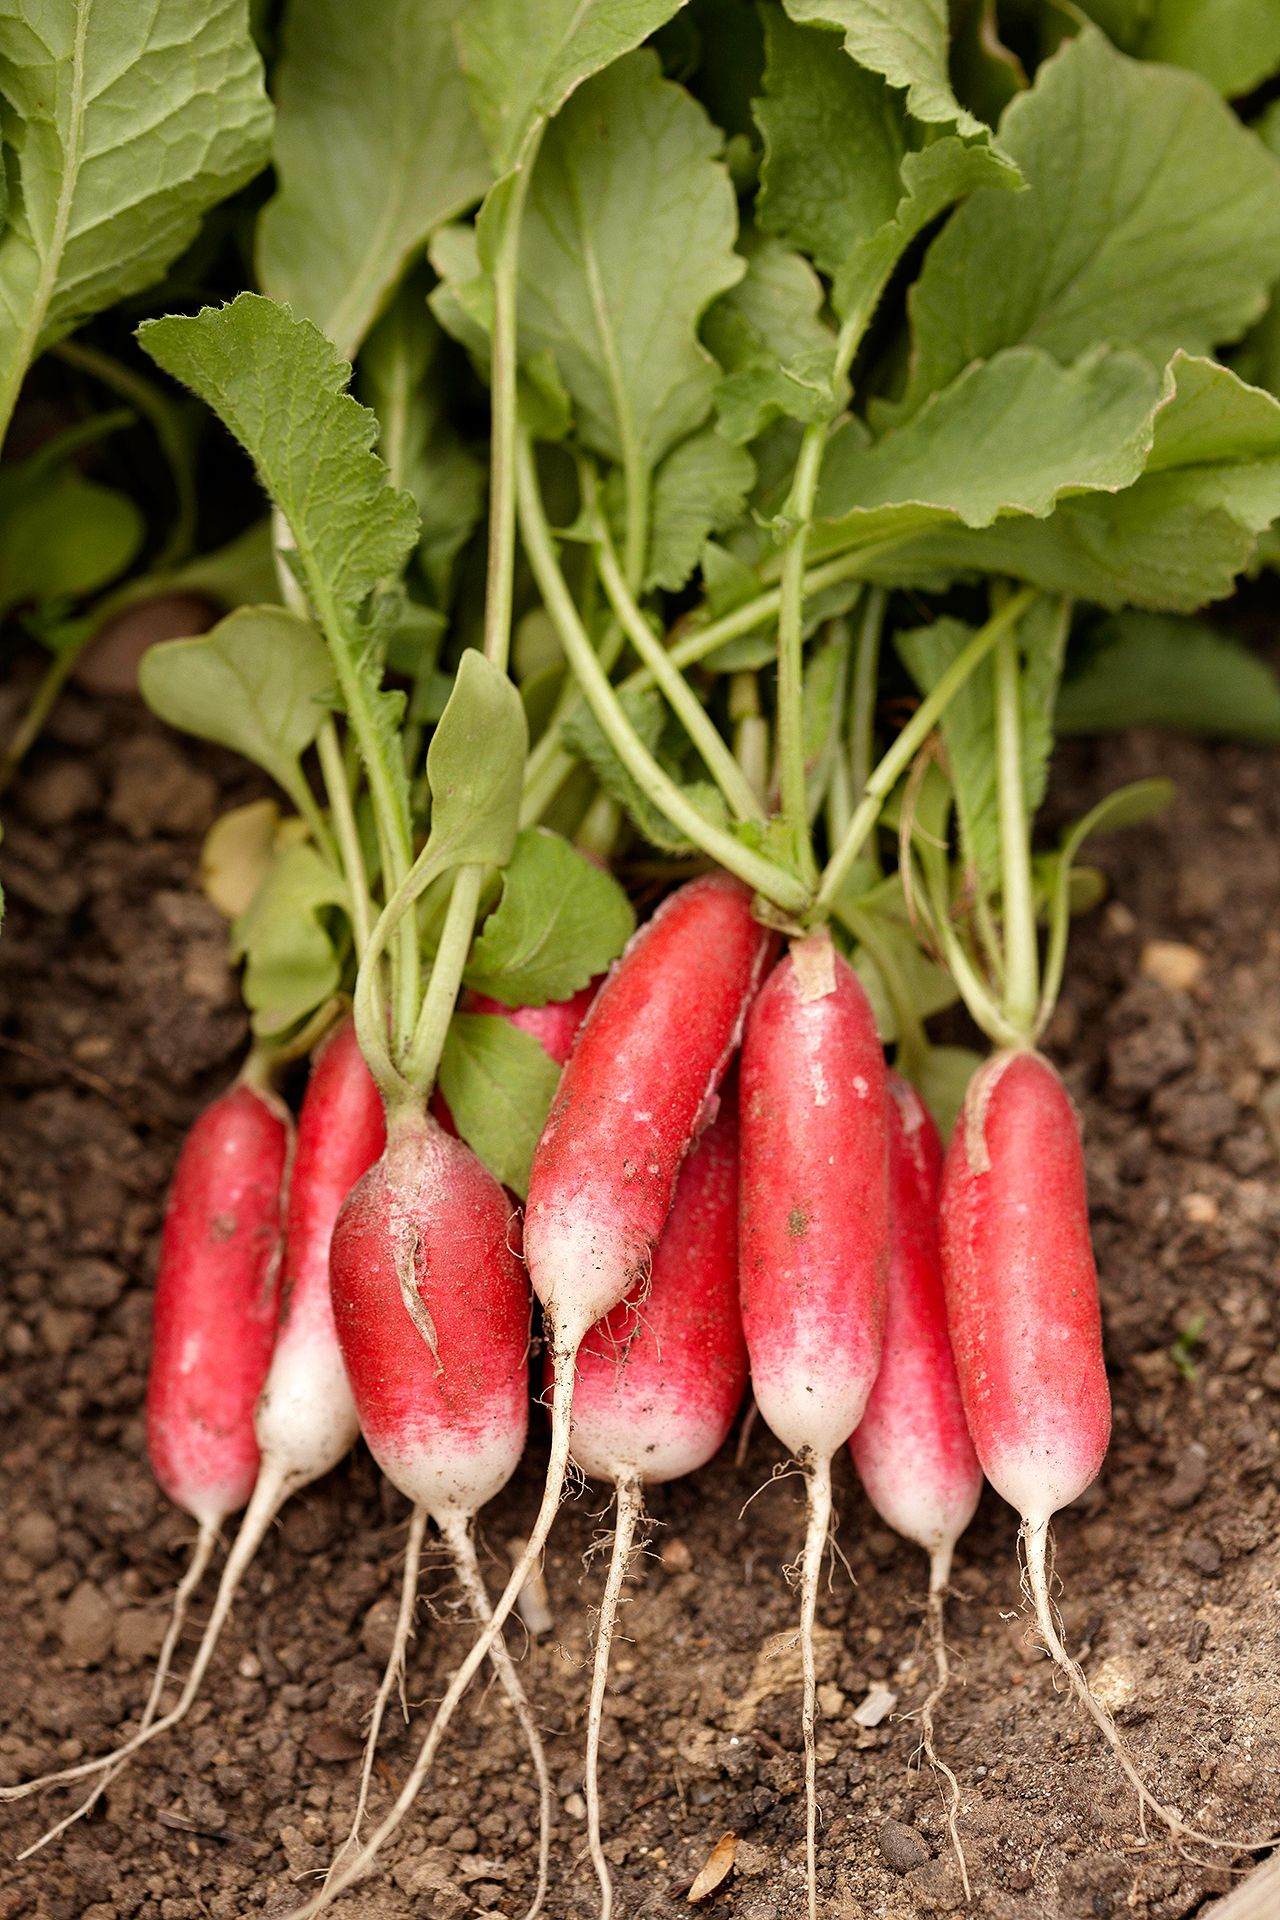 Radishes Are Fast Growing Vegetable Plants That Are Easy To Grow Making Them A Great Plant To G Growing Vegetables Fast Growing Vegetables Planting Vegetables